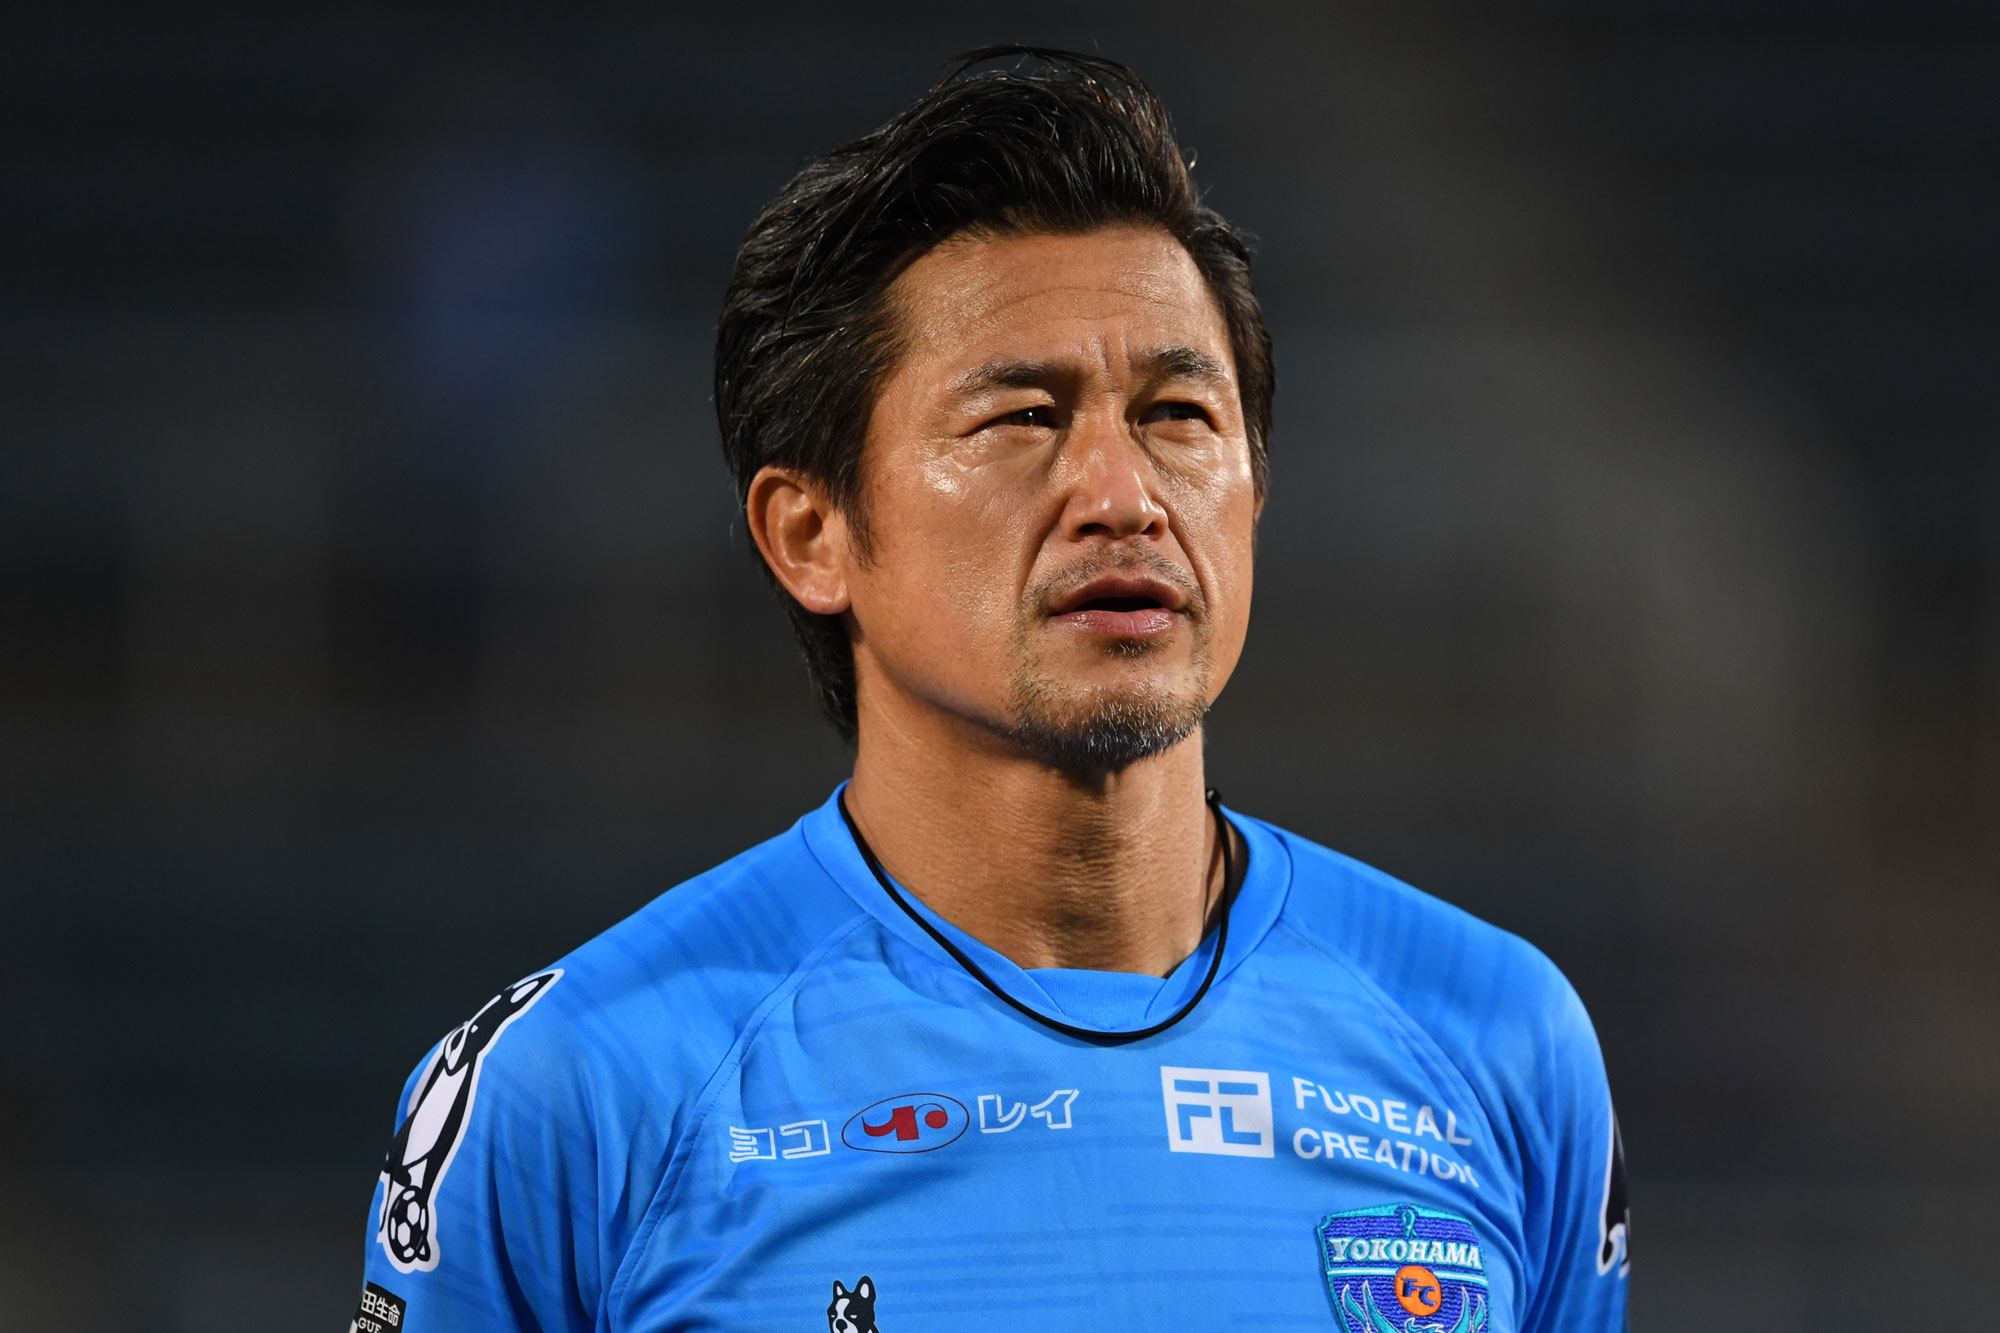 World's oldest professional footballer Kazuyoshi Miura, 52, signs new contract